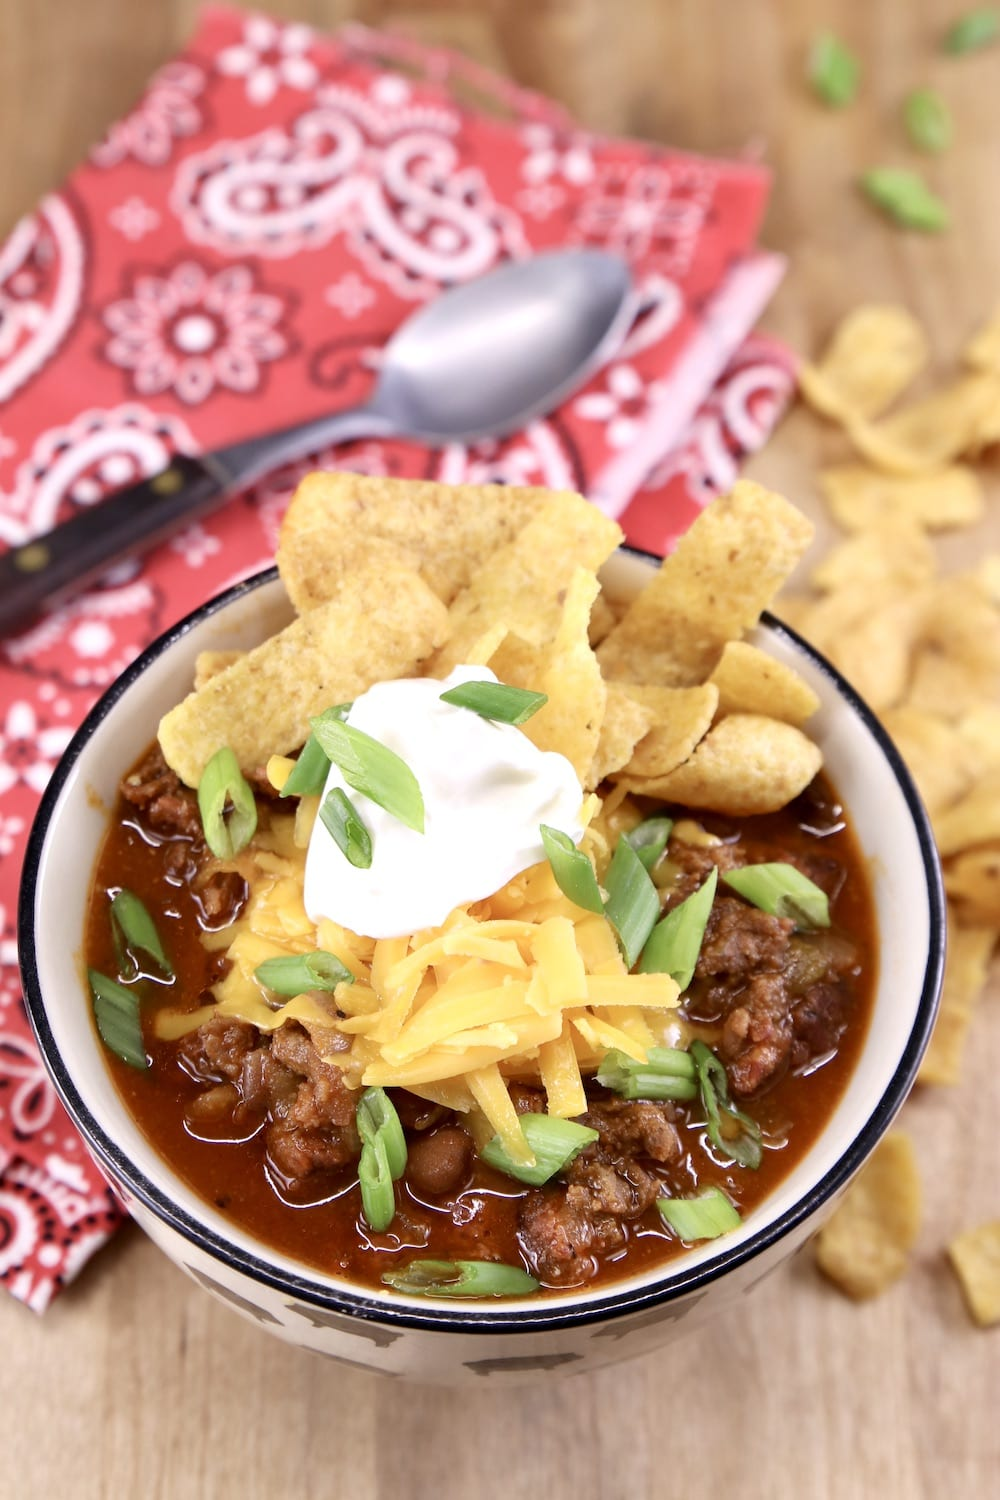 Bowl of chili with sour cream, cheese and fritos